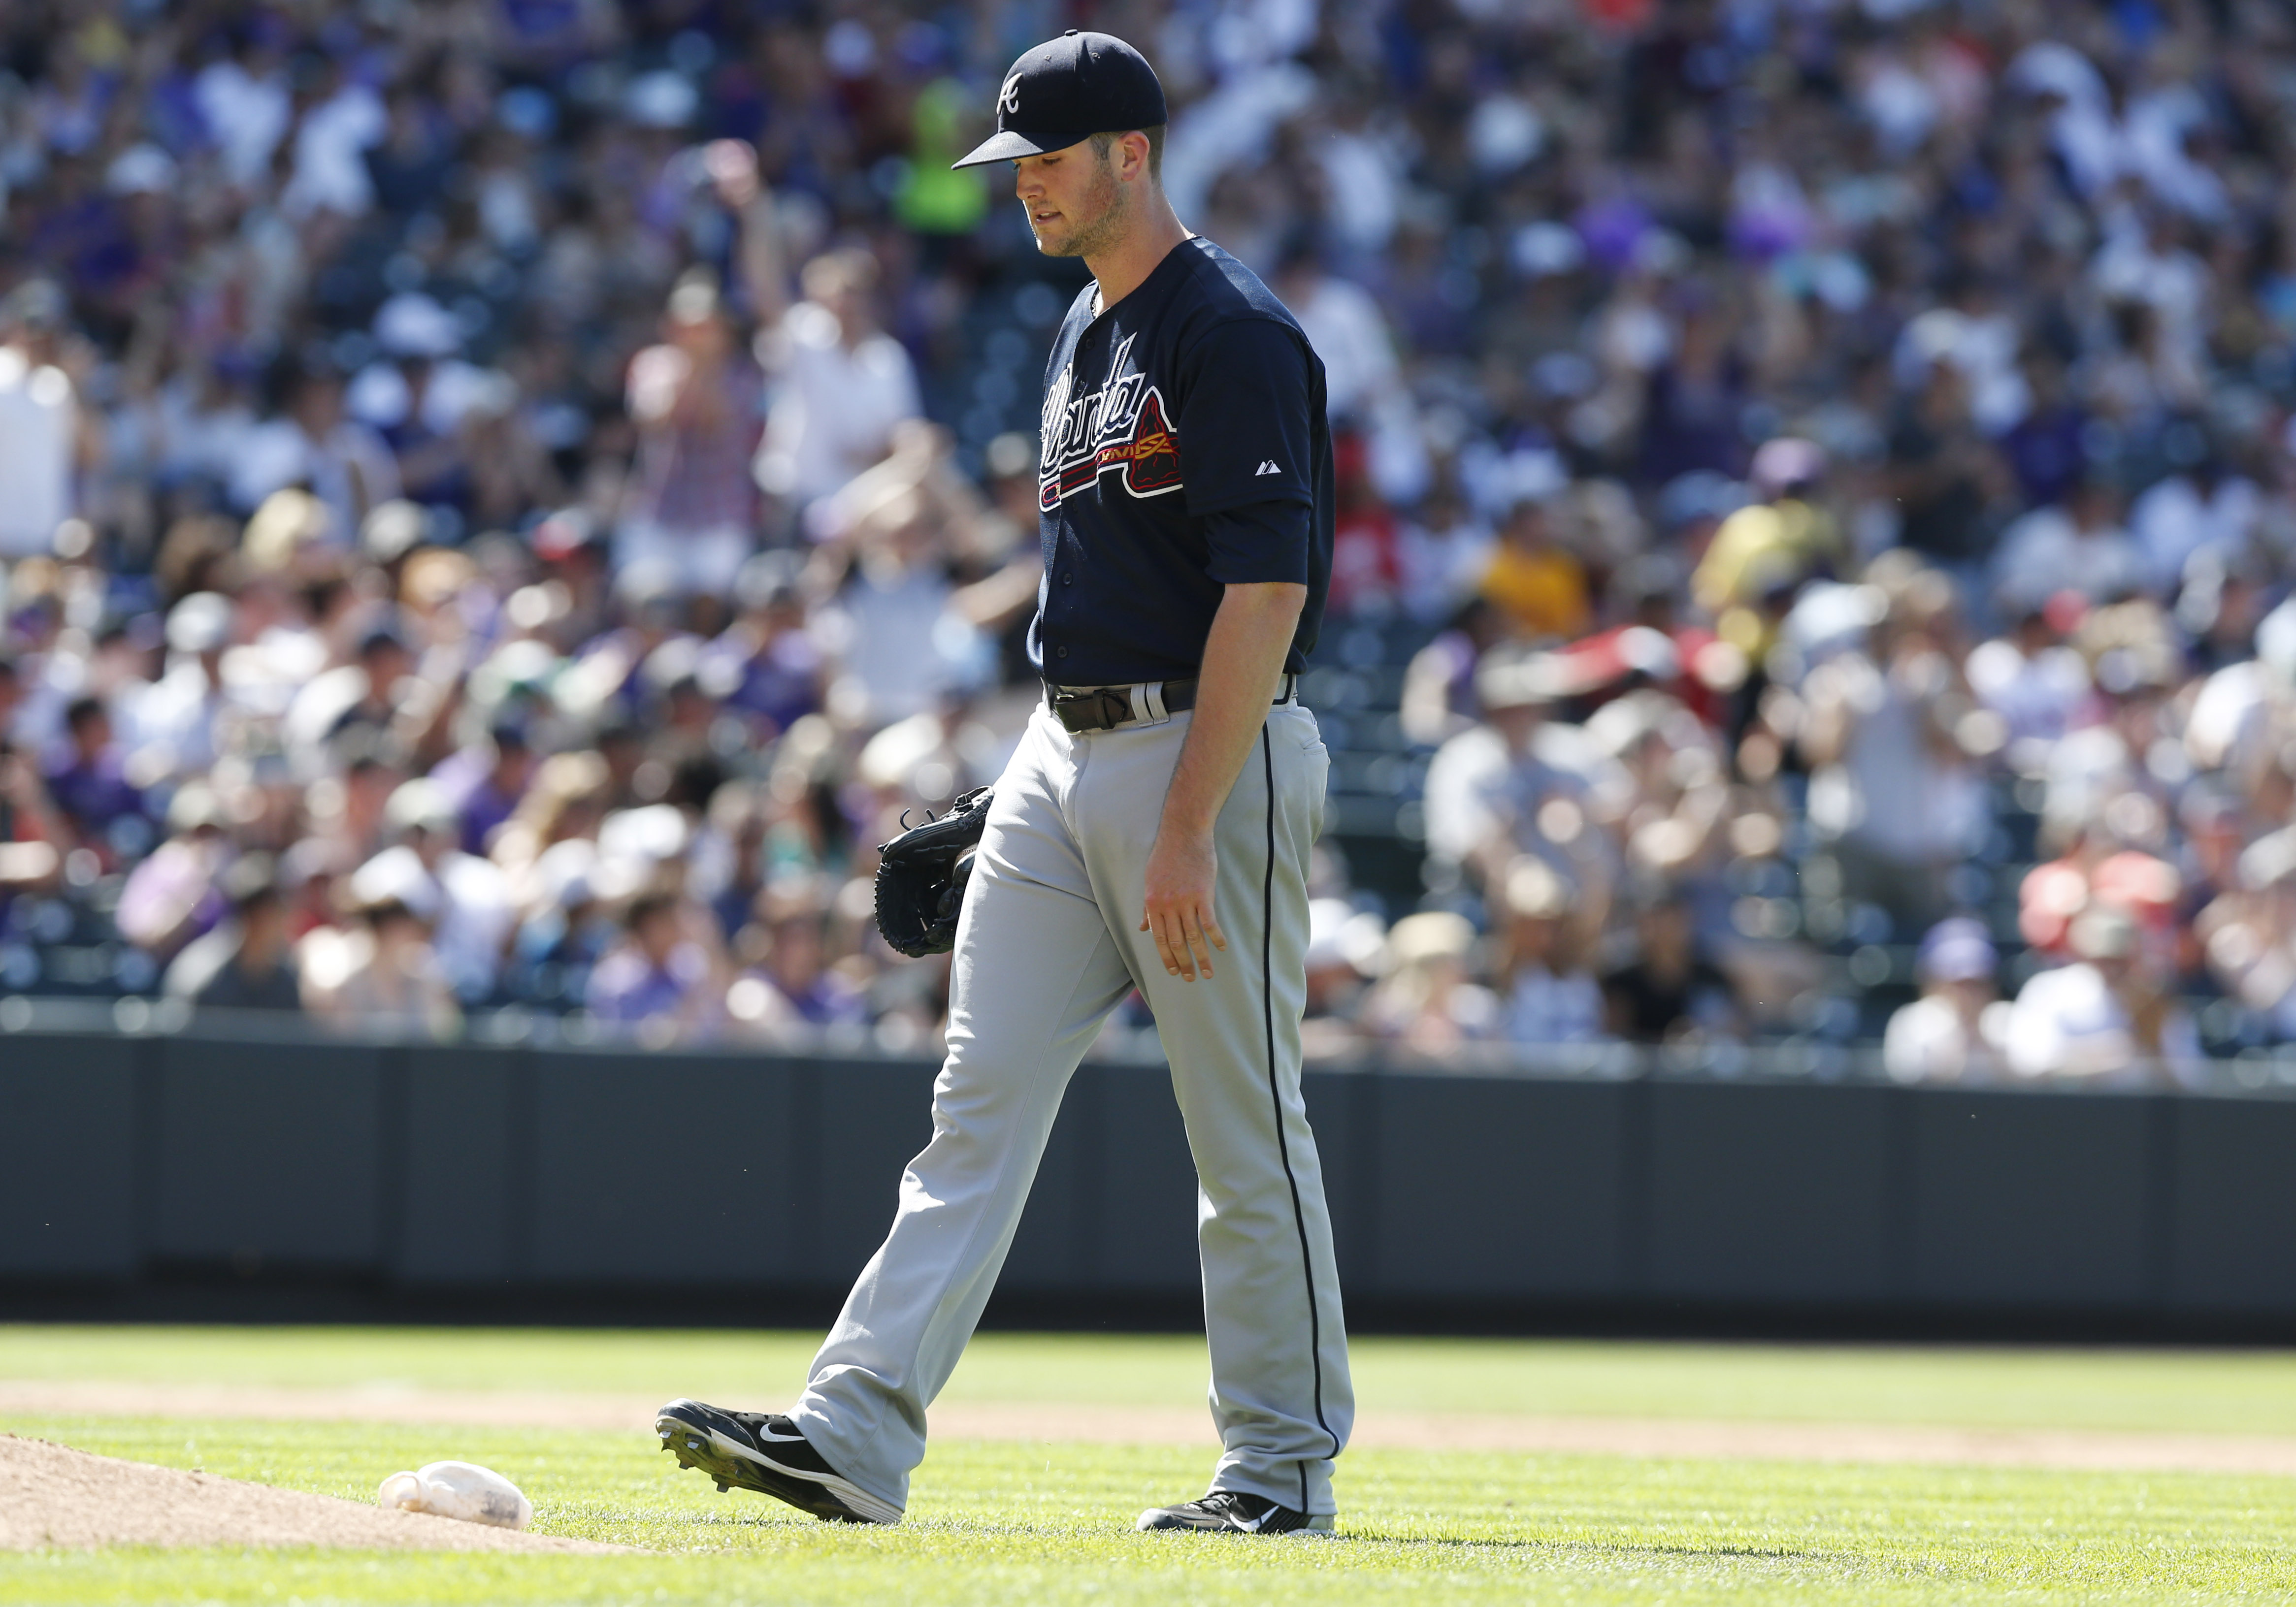 Atlanta Braves starting pitcher Alex Wood reacts after giving up a single to drive in two runners to Colorado Rockies' Charlie Blackmon in the sixth inning of a baseball game Sunday, July 12, 2015, in Denver. (AP Photo/David Zalubowski)